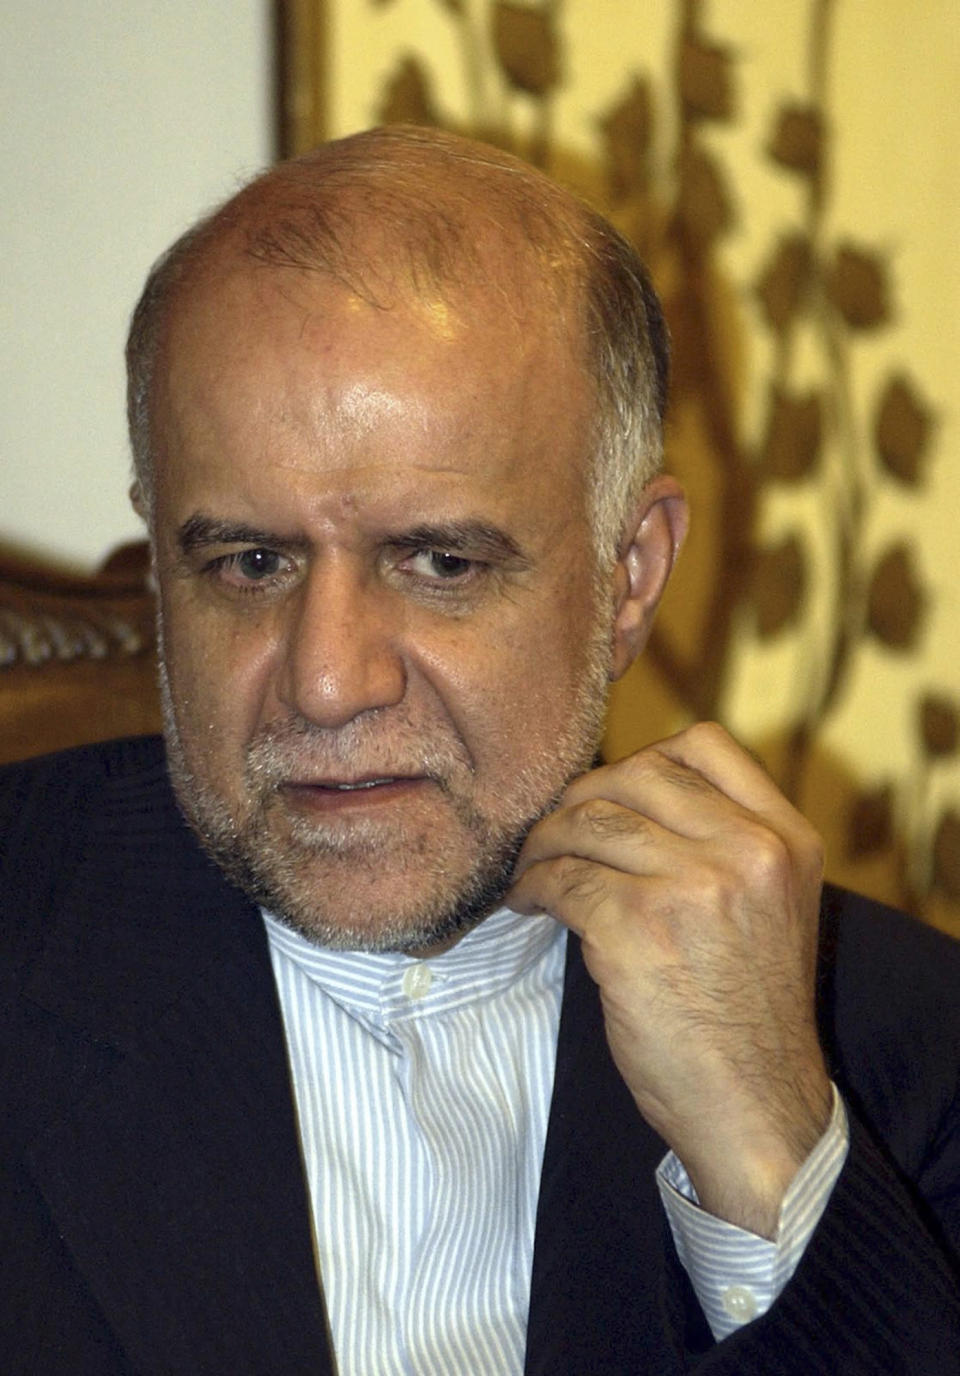 FILE-- In this Tuesday March 15, 2005 file photo, Bijan Namdar Zanganeh is seen at the Abbasi hotel in the city of Isfahan, Iran. Zanganeh who was Oil Minister and ousted when President Ahmadinejad took office in 2005, is a potential candidate for the new Oil Minister in cabinet of President elect Hasan Rouhani. (AP Photo/Hasan Sarbakhshian, File)